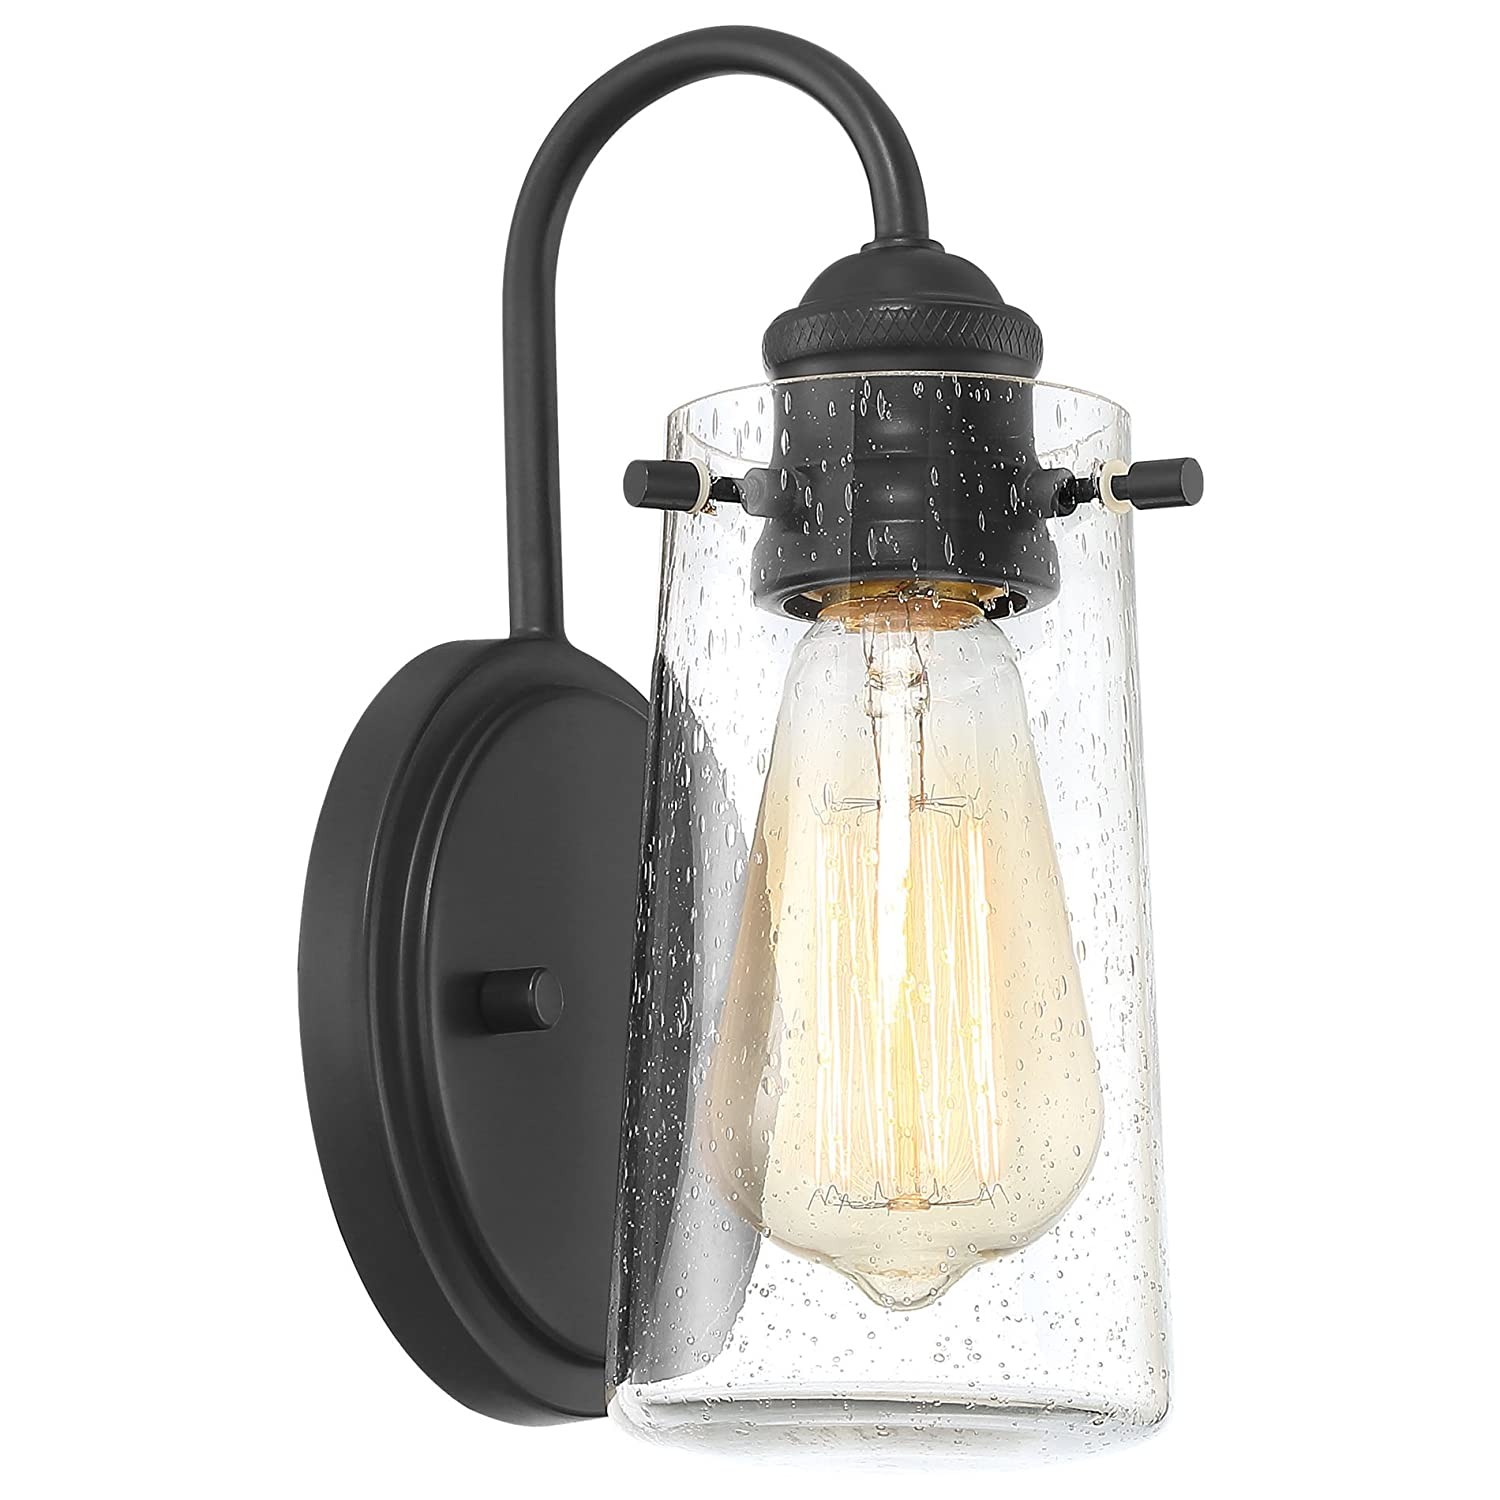 Kira Home Rayne 9.5 Modern 1-Light Wall Sconce Bathroom Light, Seeded Glass Matte Black Finish